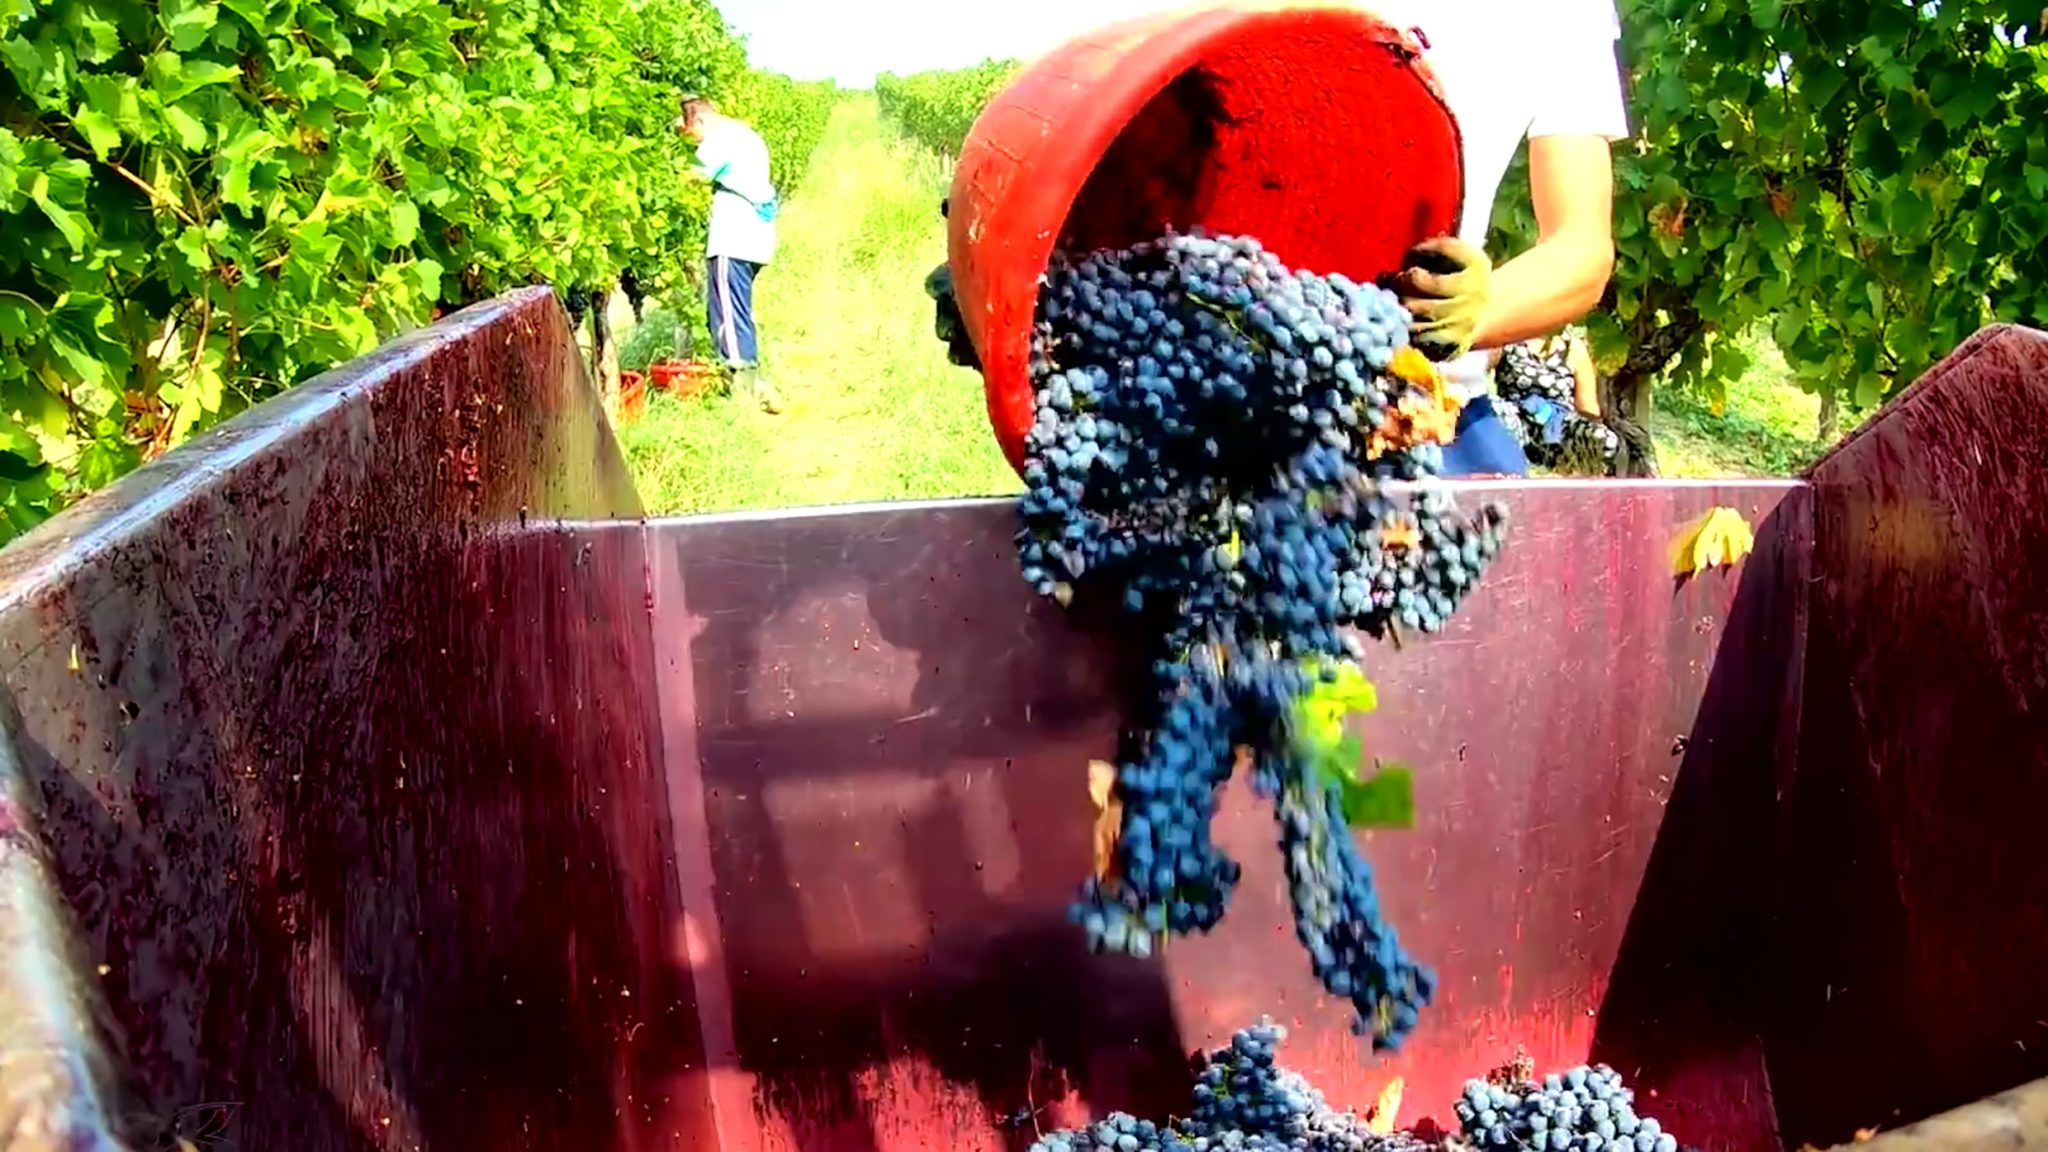 The Harvest is approaching and promises to be excellent, especially for Chianti